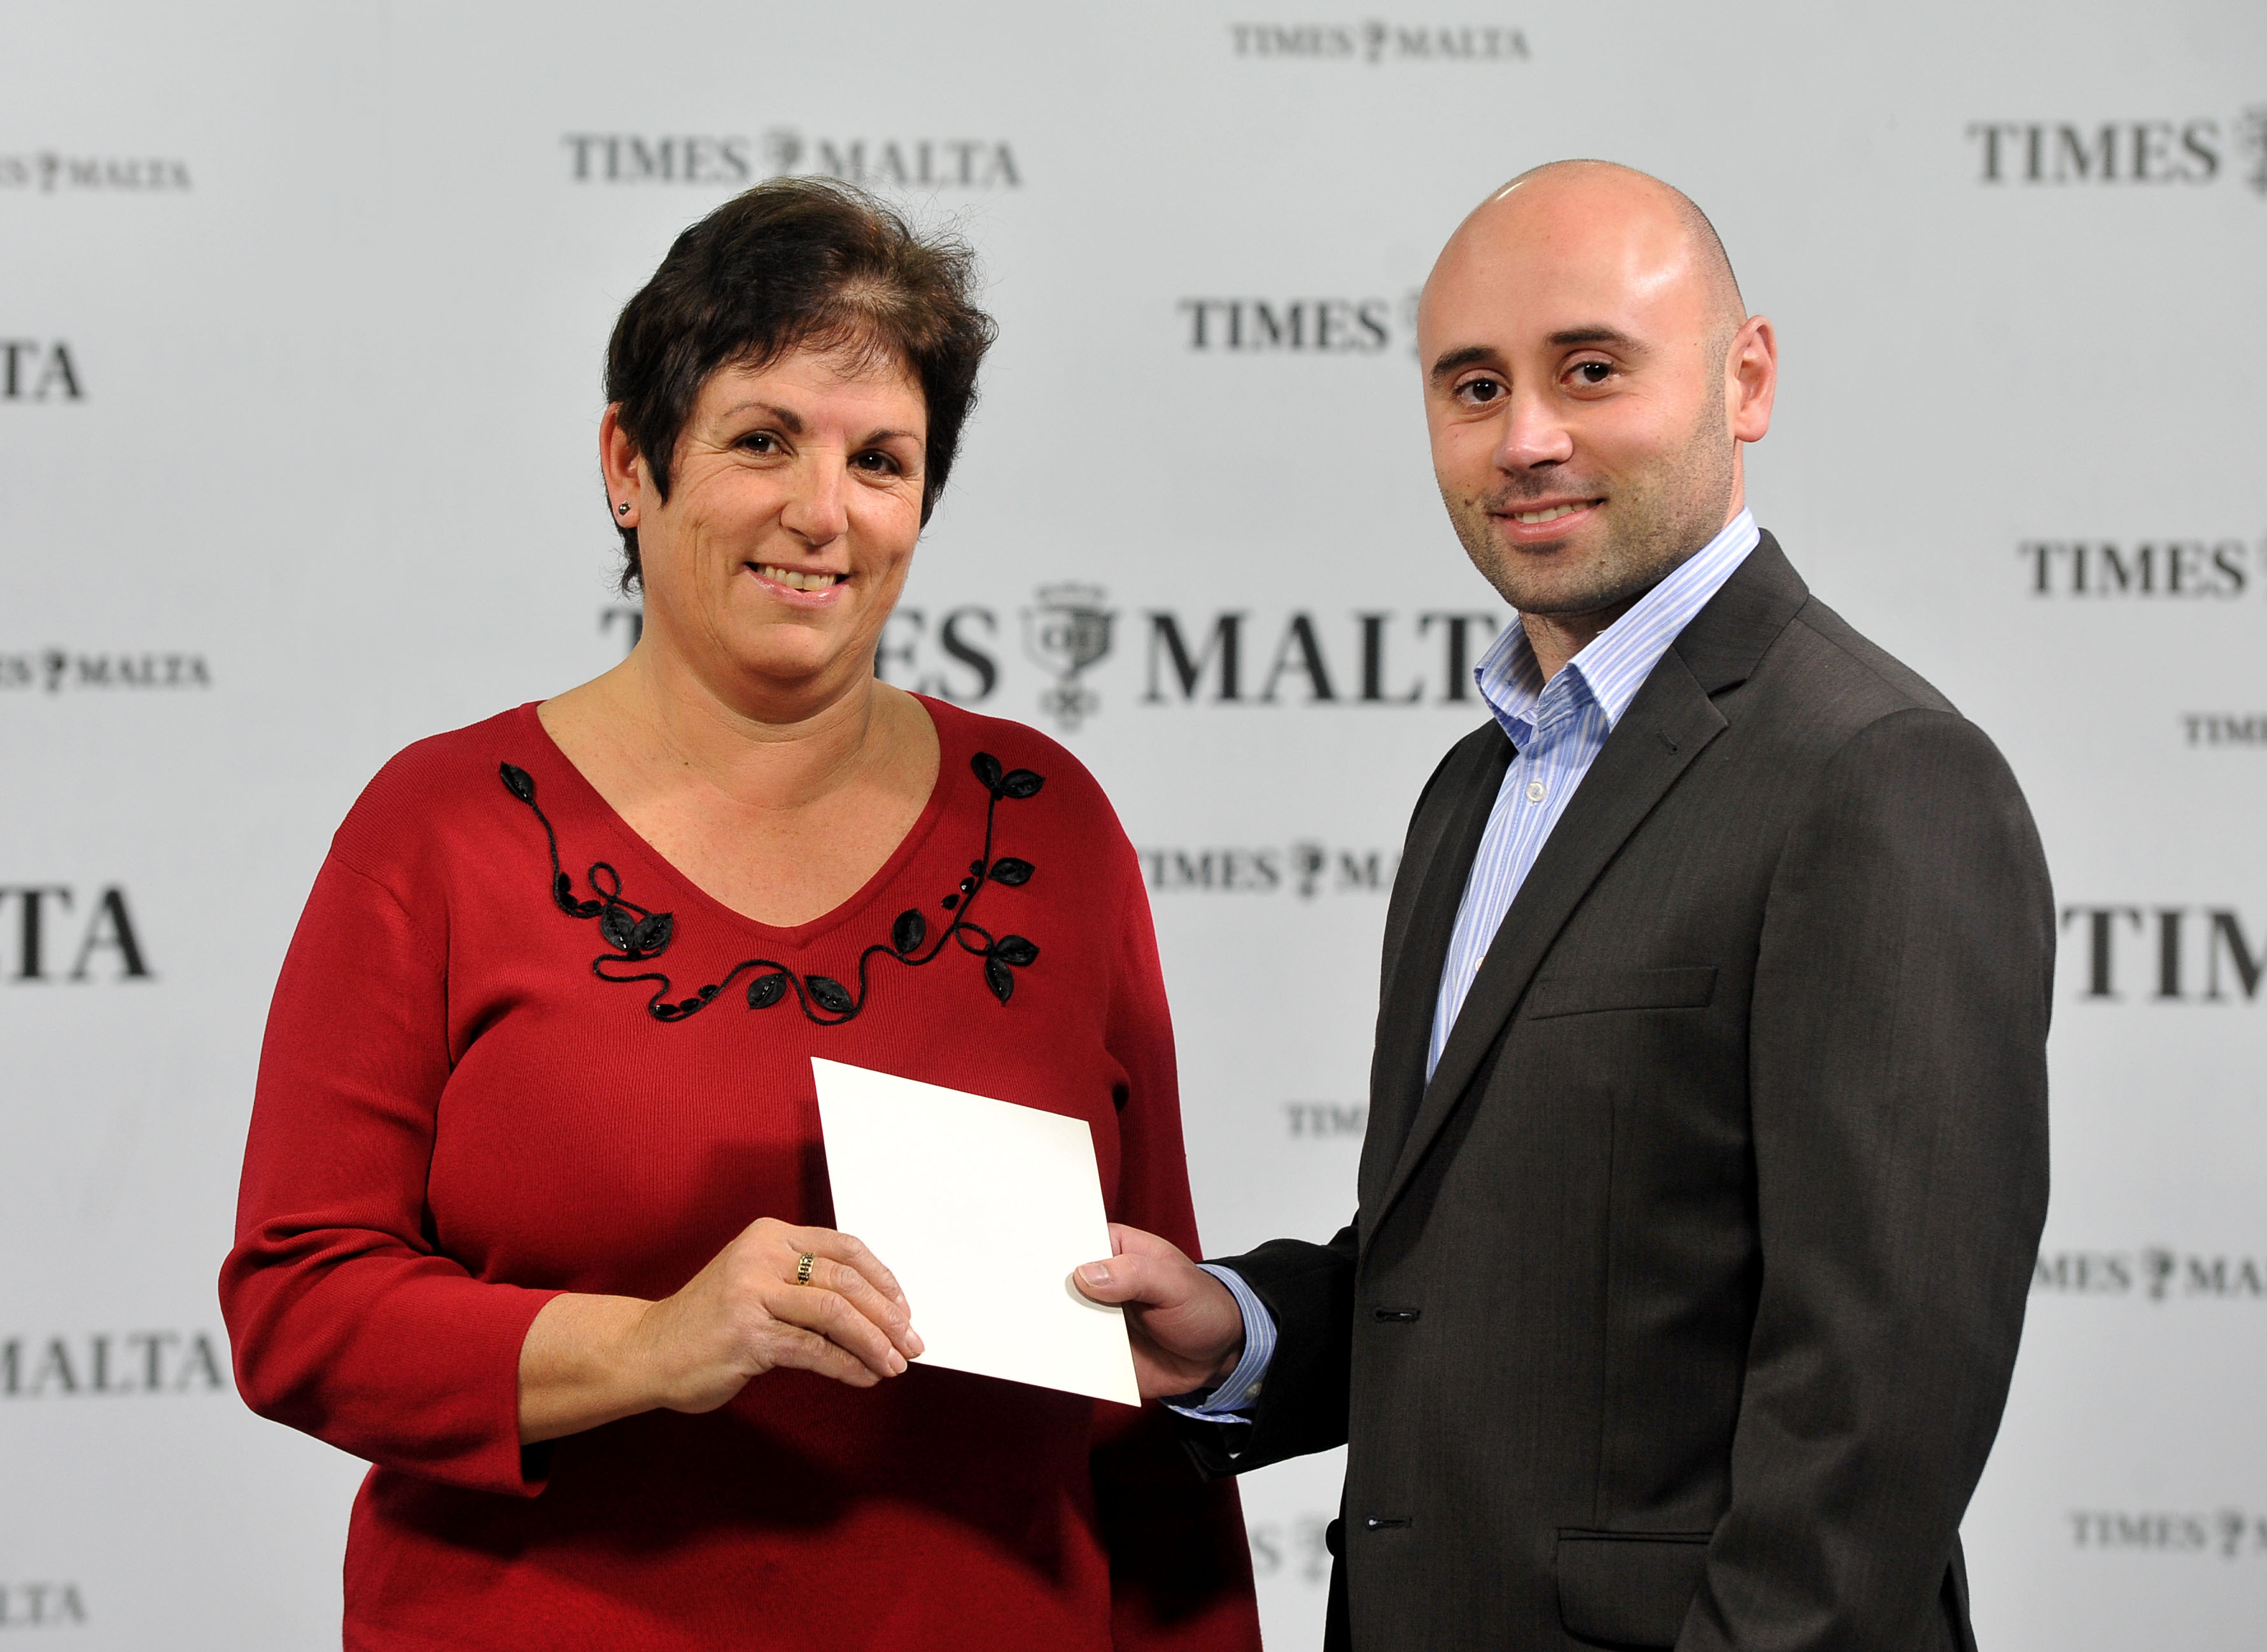 Josanne Peregin receives her voucher for lunch at Fra Martino from Times of Malta's CCO Alex Galea